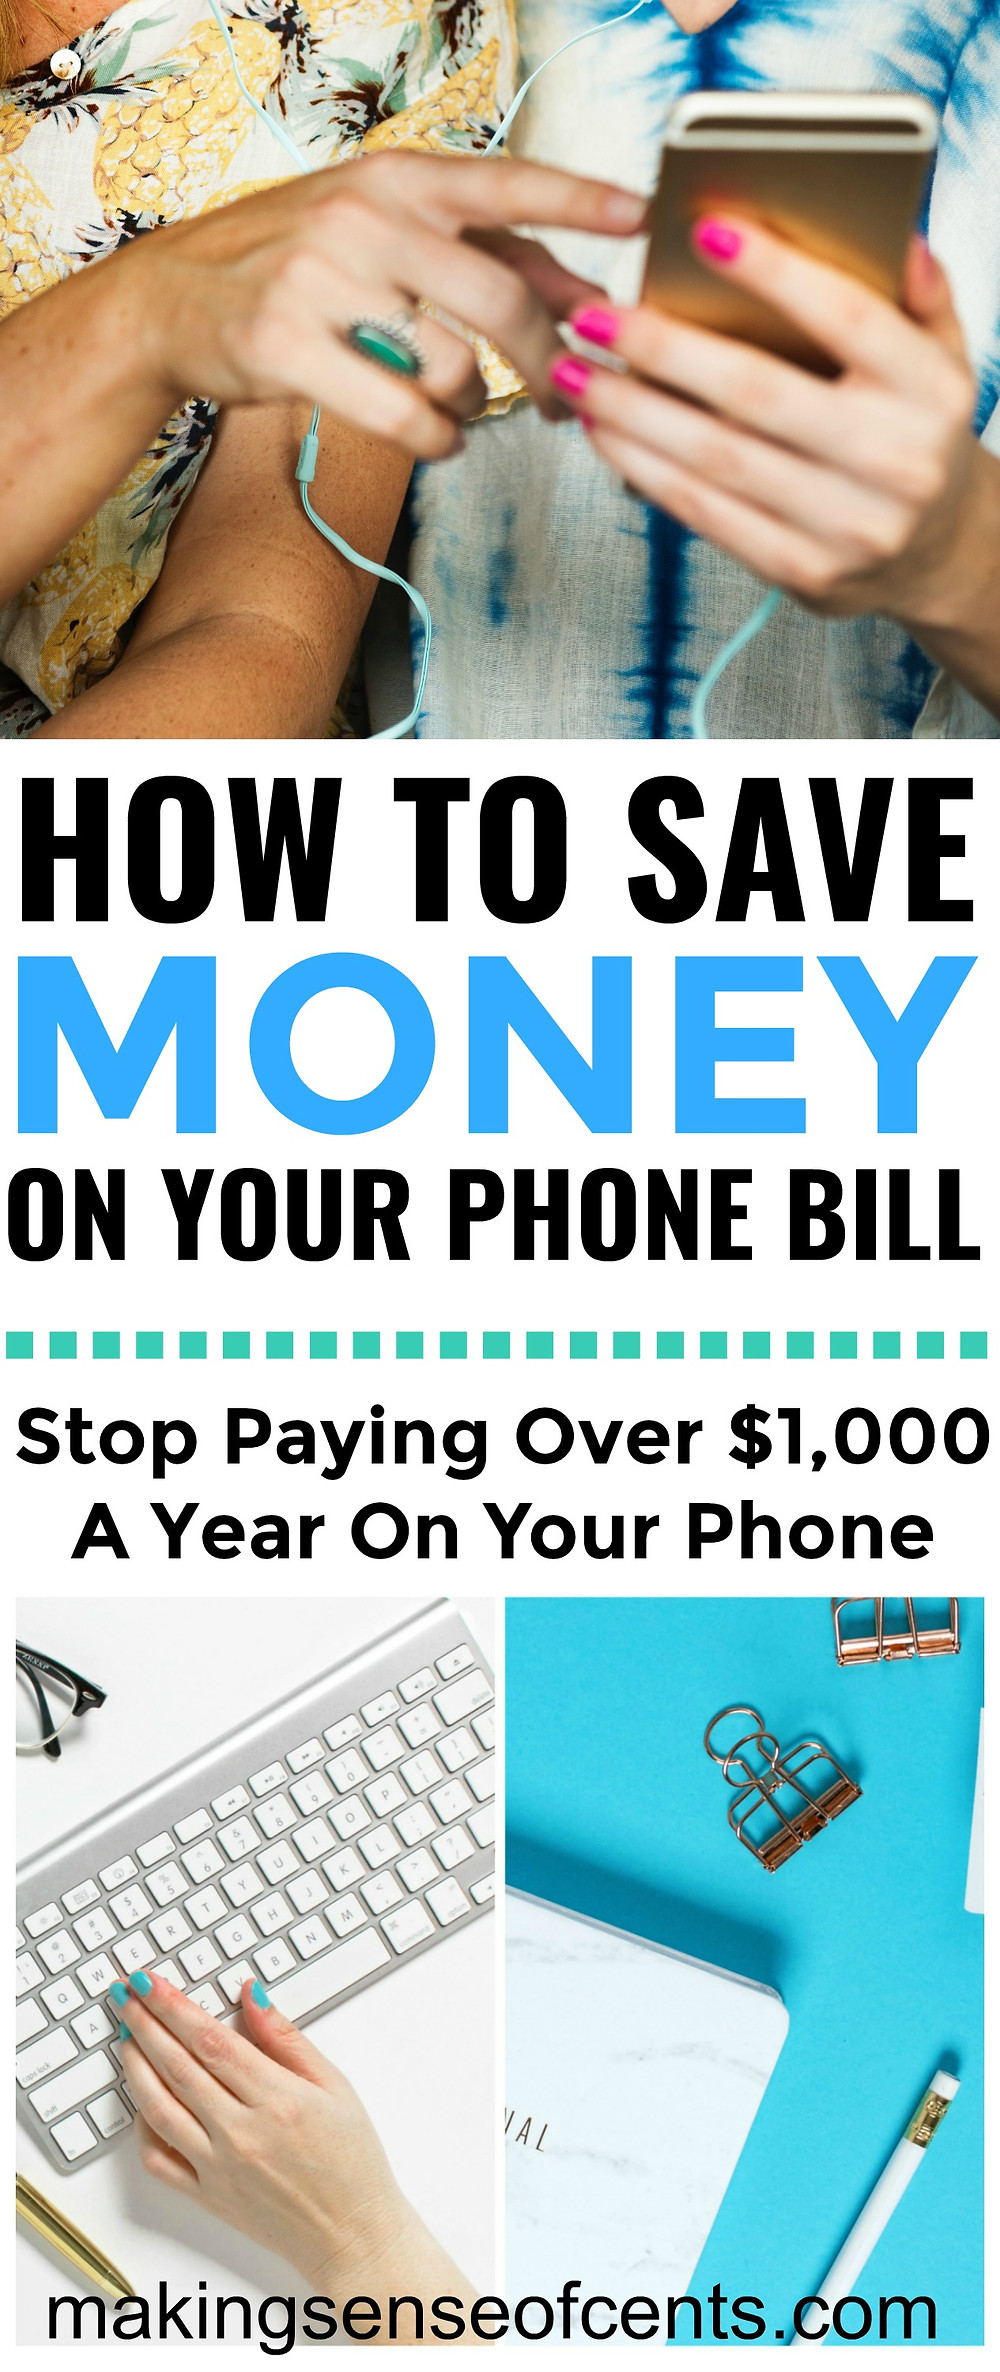 Looking to learn how to save money on your phone bill? Your cell phone bill is probably one of the largest bills that you pay each month. Cell phone bills can easily cost over $100 per month, and if you have a family, then you may even be paying a few hundred dollars per month. #savemoneyonyourphonebill #savemoney #waystosavemoney